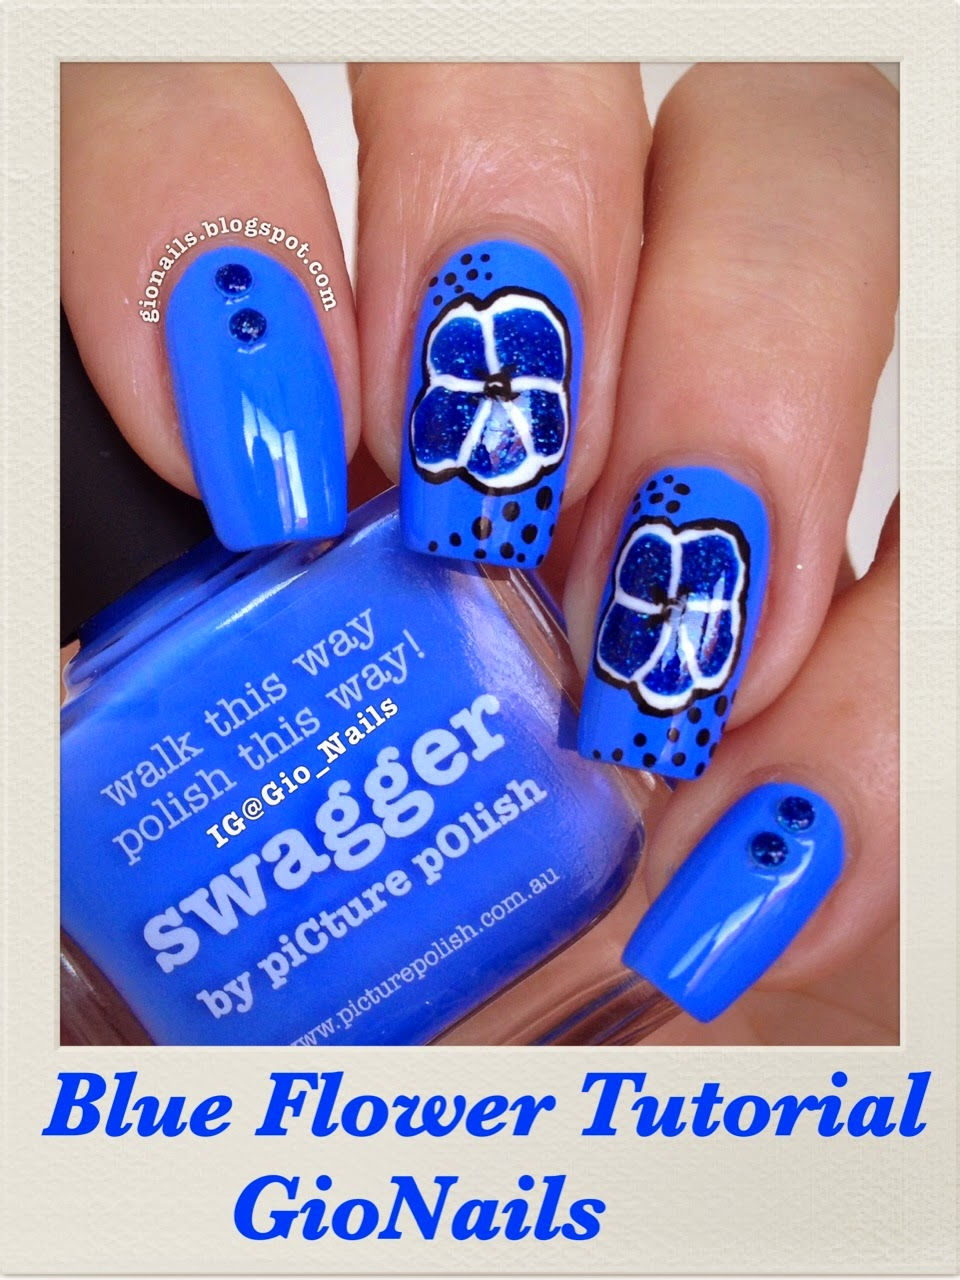 http://gionails.blogspot.be/2014/06/blue-flower-tutorial.html